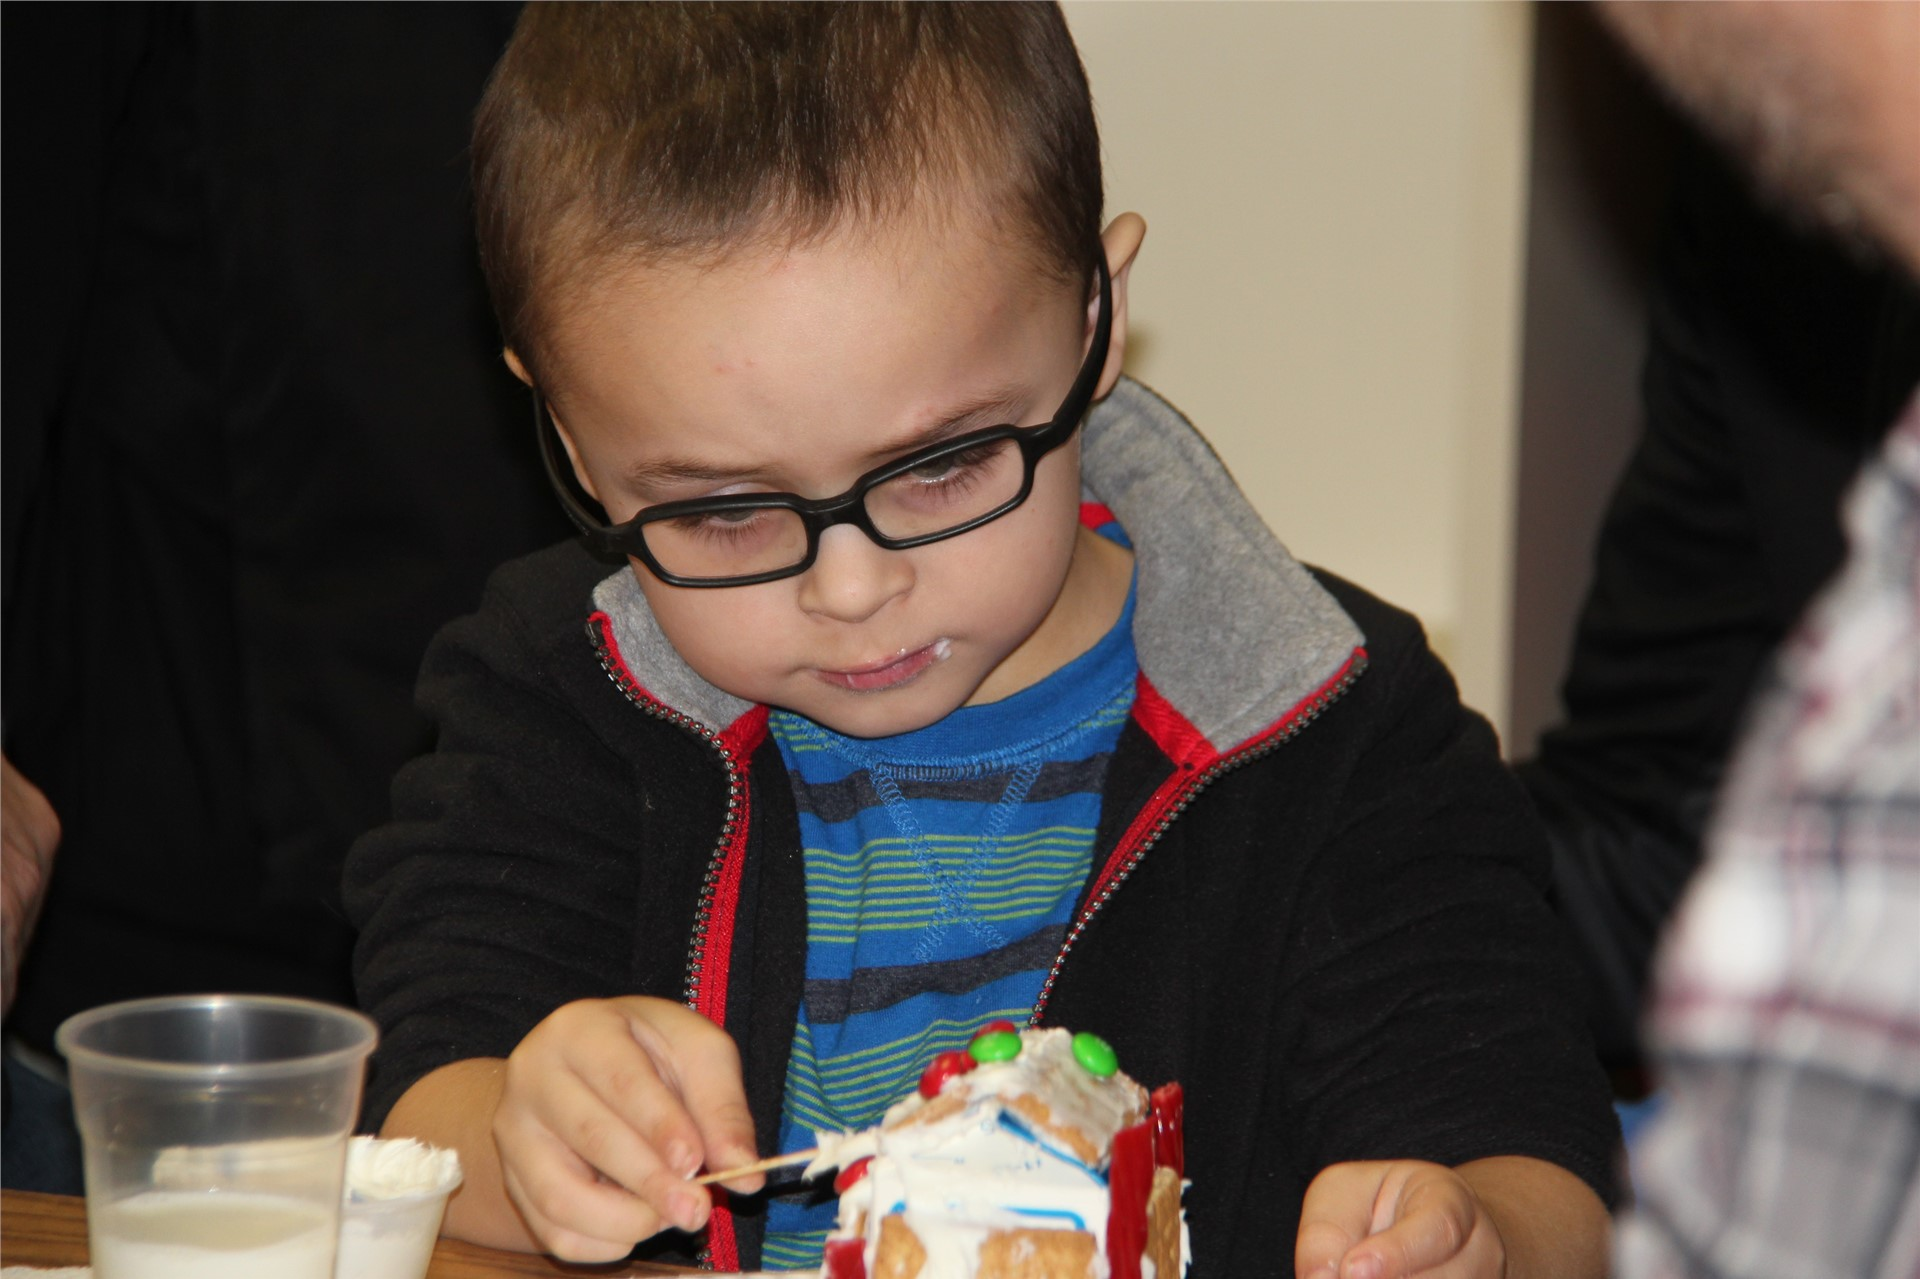 student frosting gingerbread house